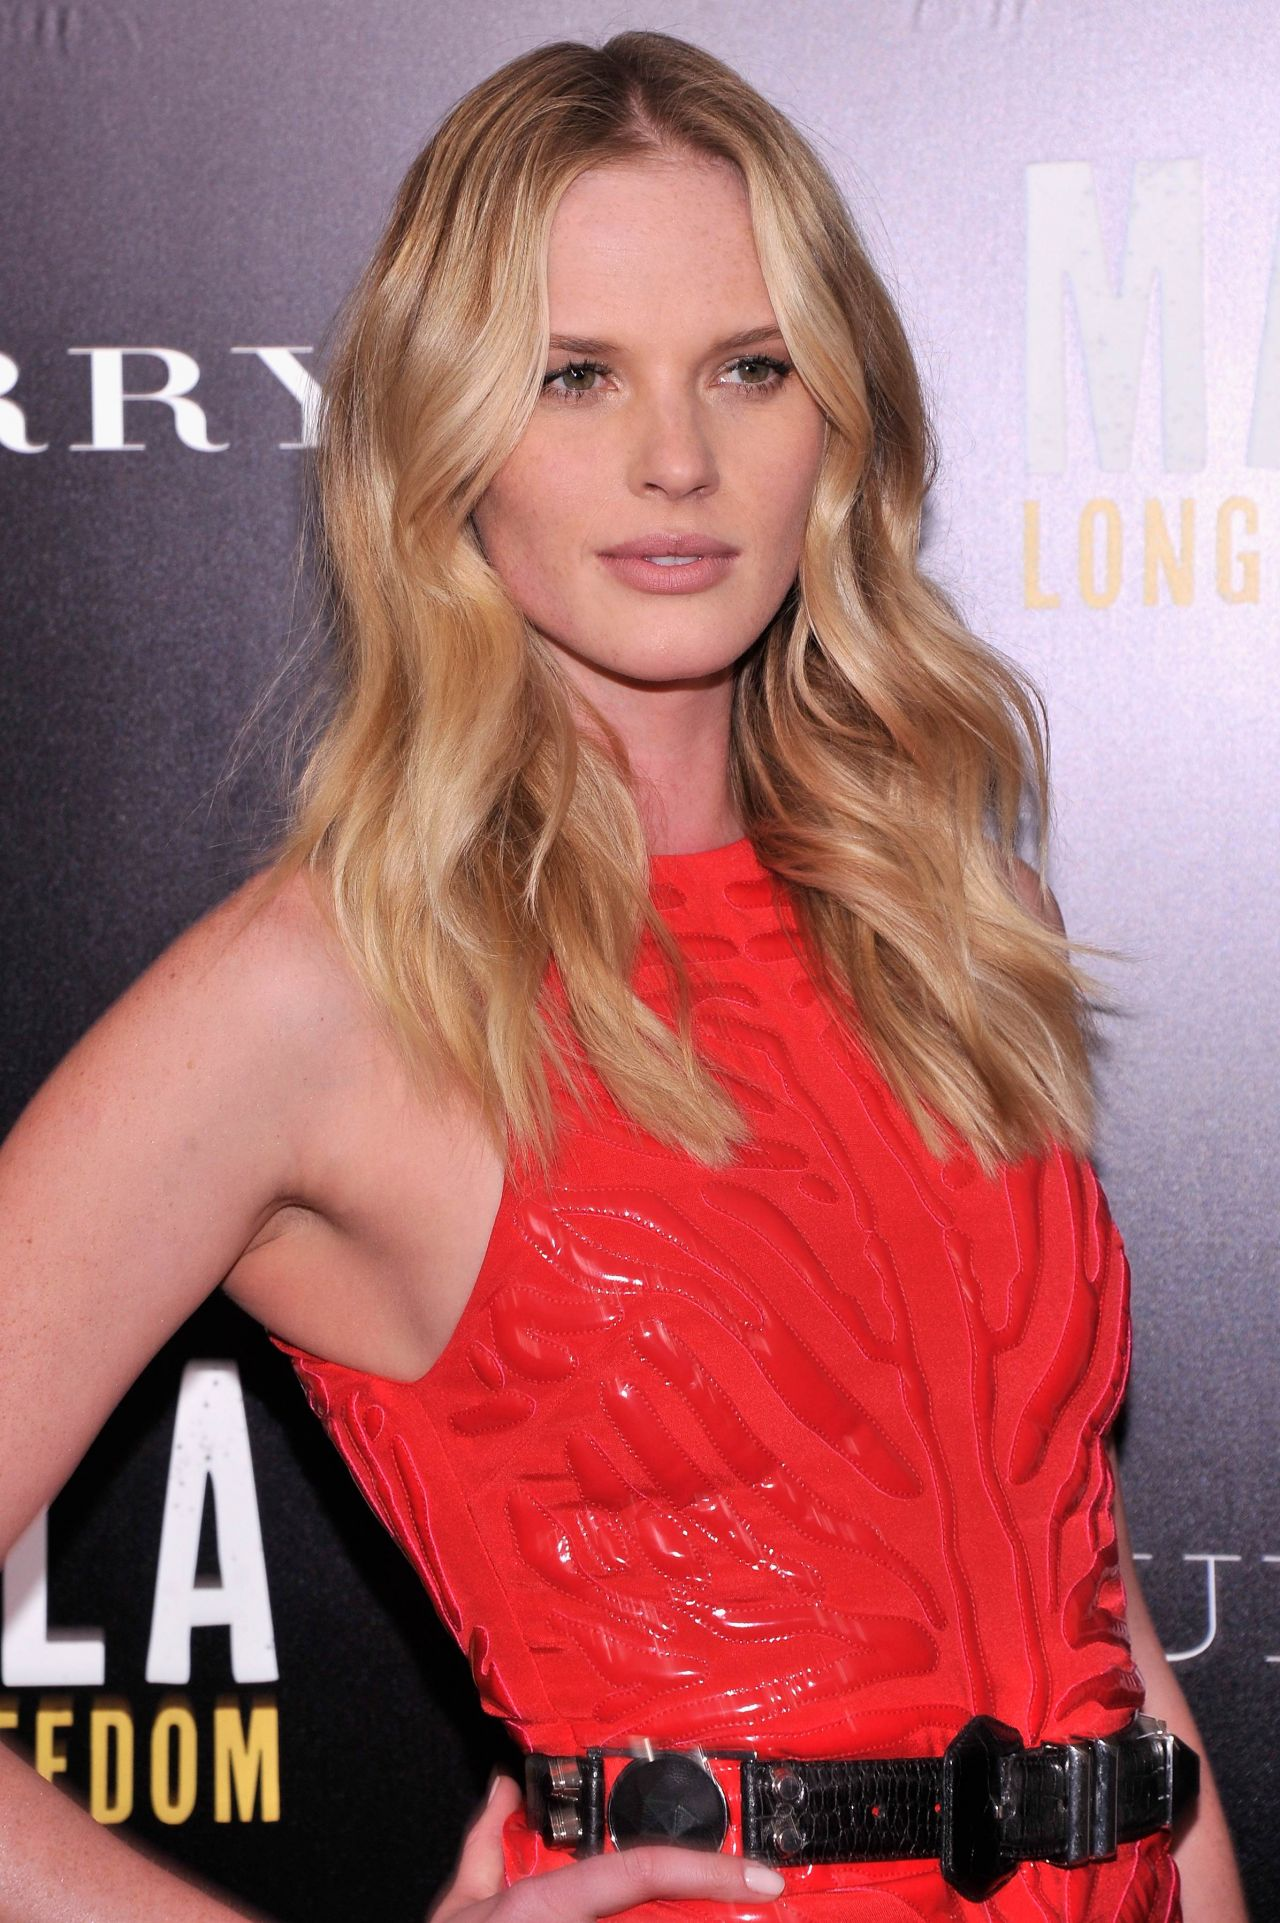 anne vyalitsyna 2016anne vyalitsyna and adam levine, anne vyalitsyna victoria's secret, anne vyalitsyna wikipedia, anne vyalitsyna vk, anne vyalitsyna 2016, anne vyalitsyna sports illustrated, anne vyalitsyna wikipedia español, anne vyalitsyna cellulite, anne vyalitsyna instagram, anne vyalitsyna behati prinsloo, anne vyalitsyna fashion spot, anne vyalitsyna husband, anne vyalitsyna interview, anne vyalitsyna and adam cahan, anne vyalitsyna and adam levine relationship